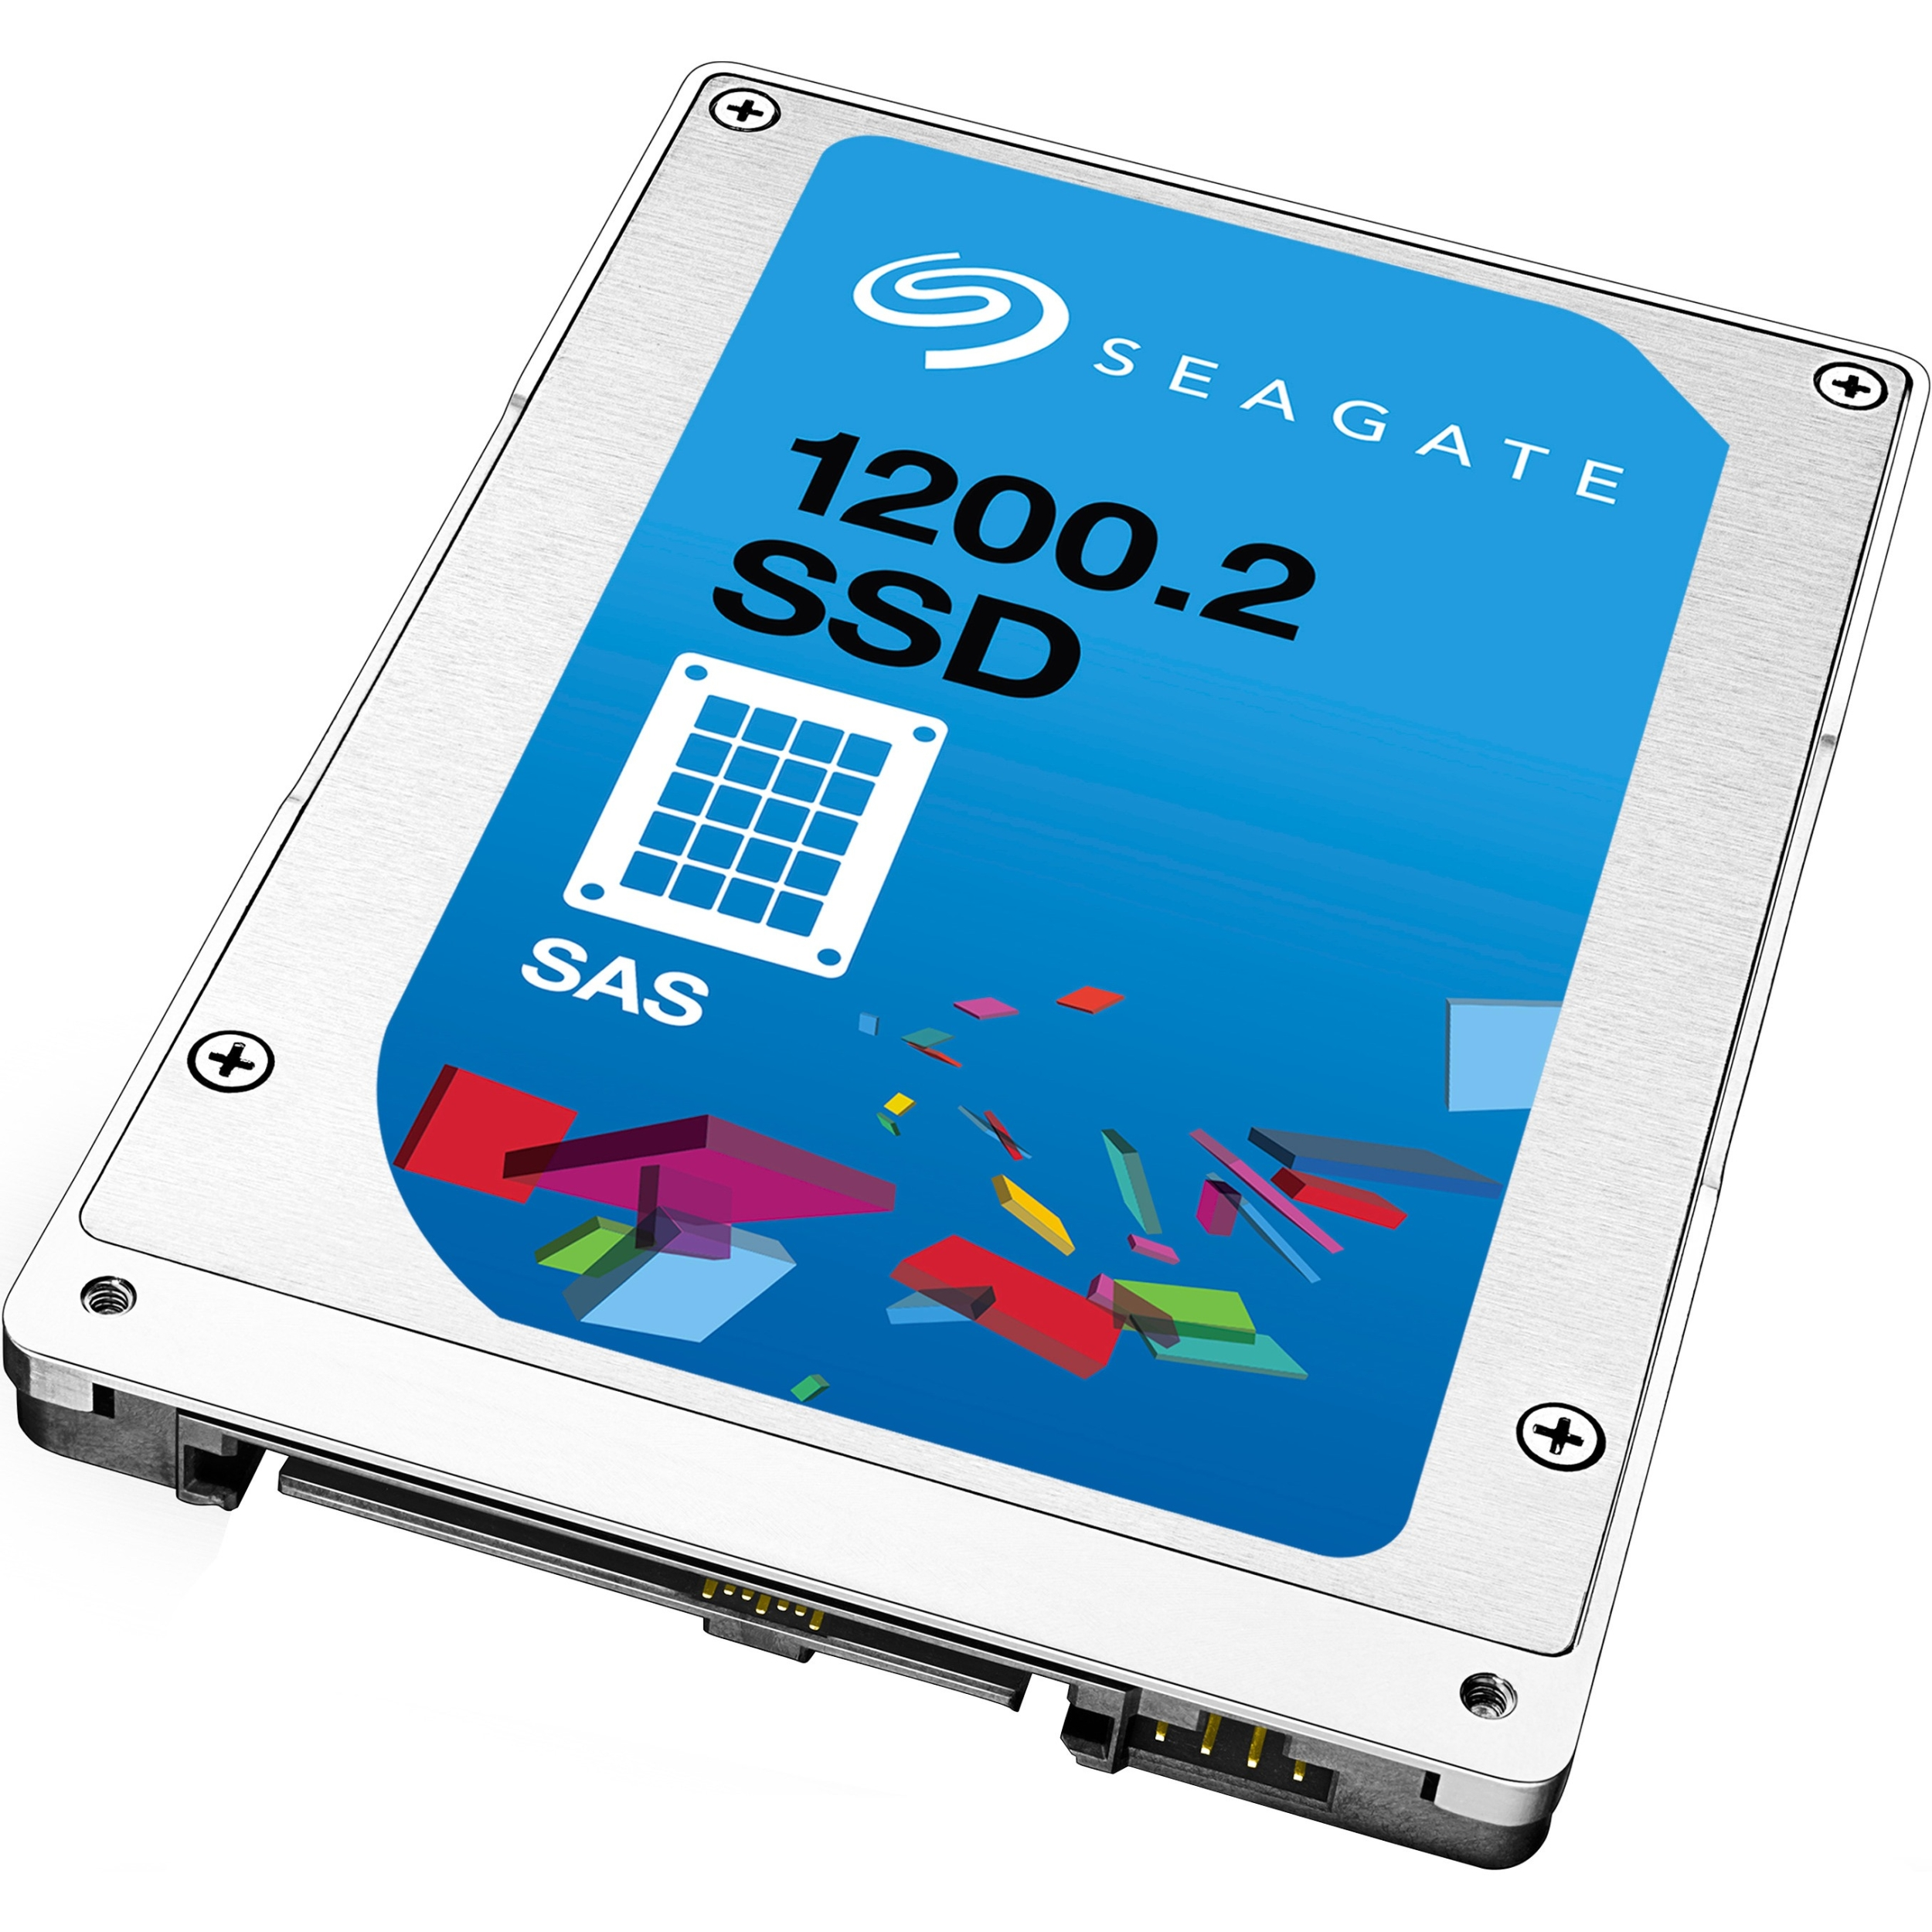 """Seagate 1200.2 St800fm0233 800 Gb 2.5"""" Internal Solid State Drive Sas (st800fm0233) by Seagate"""